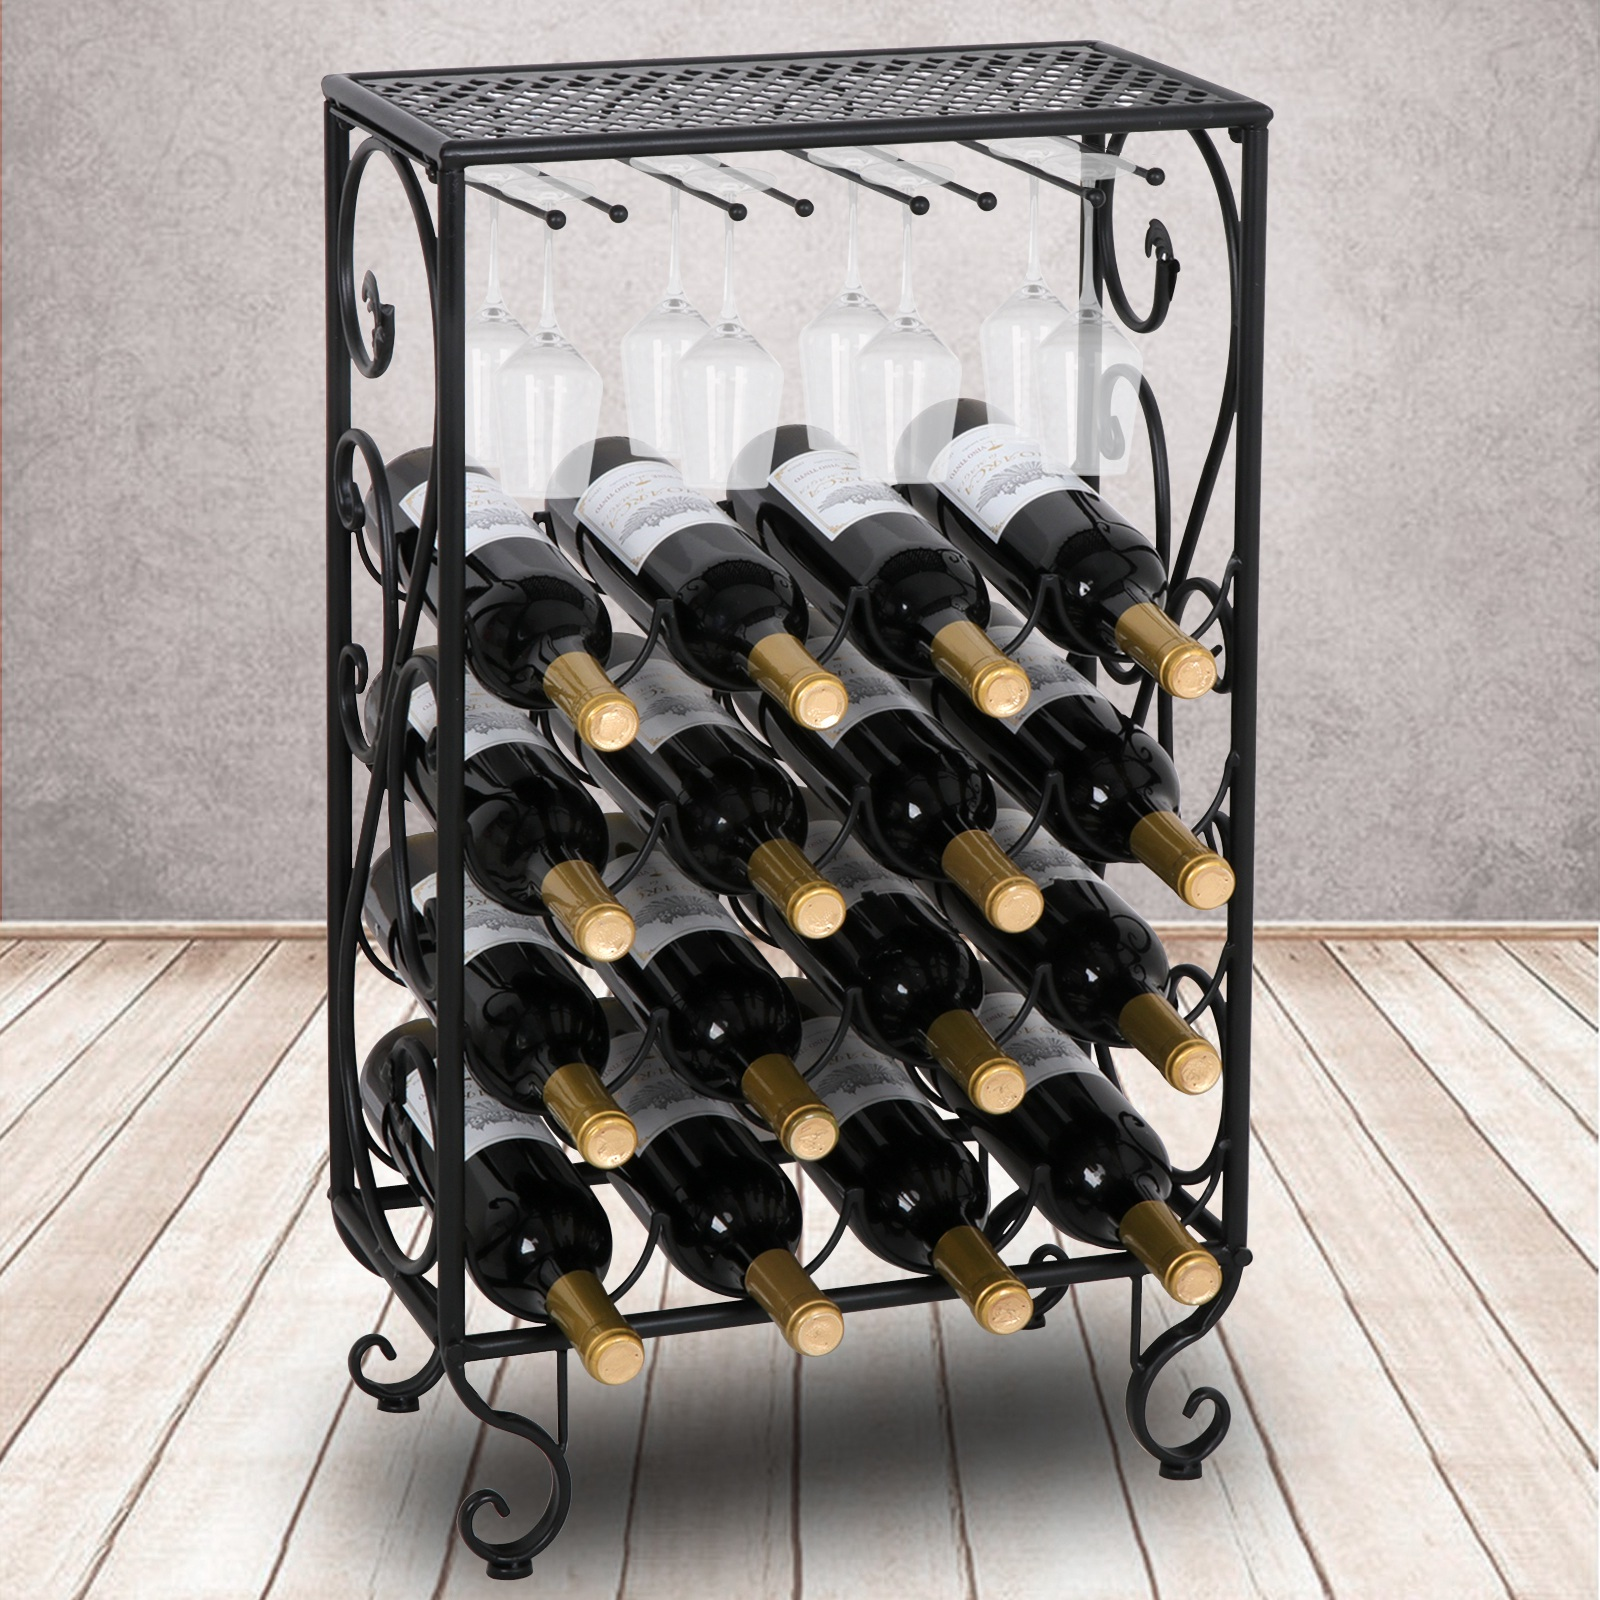 Zeny 16 Bottle Black Finished Table Top Wine Rack with Glass Holder Solid Wrought Iron Floor Free Standing Wine Organizer Rack Cabinet Kitchen